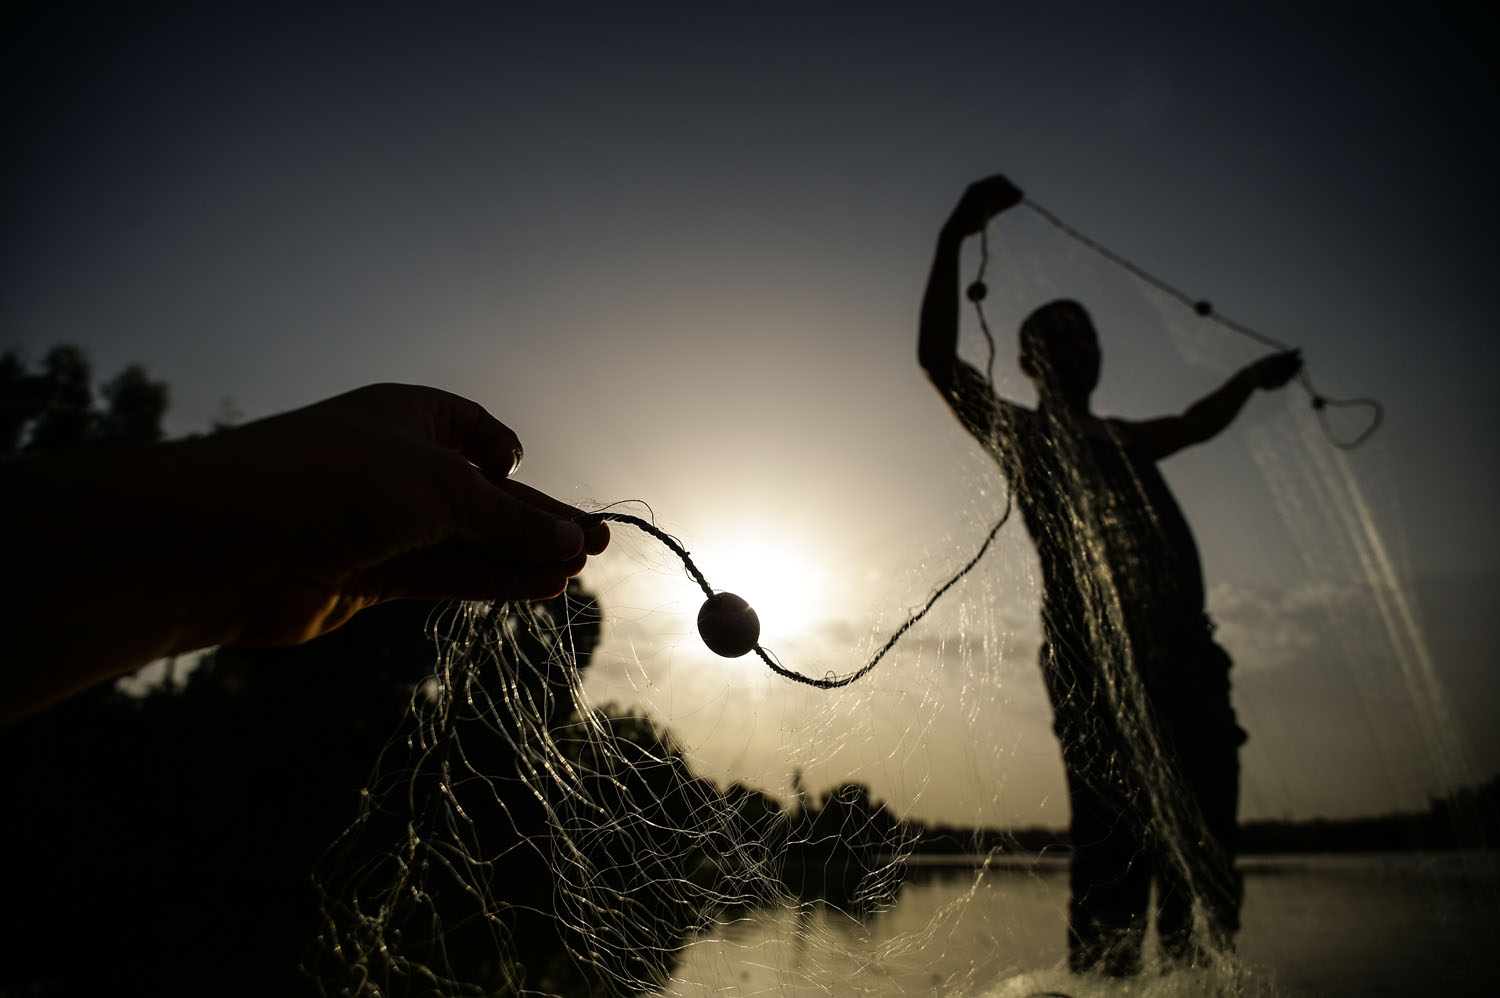 An Egyptian Fisherman handles a net on his boat in the waters of the Pharaonic Sea in the village of Kafr Fisha, province of Munuf, on June 16, 2018. The Pharaonic Sea is the name of a large water body in the province of Menoufia, an area of 2500 acres an